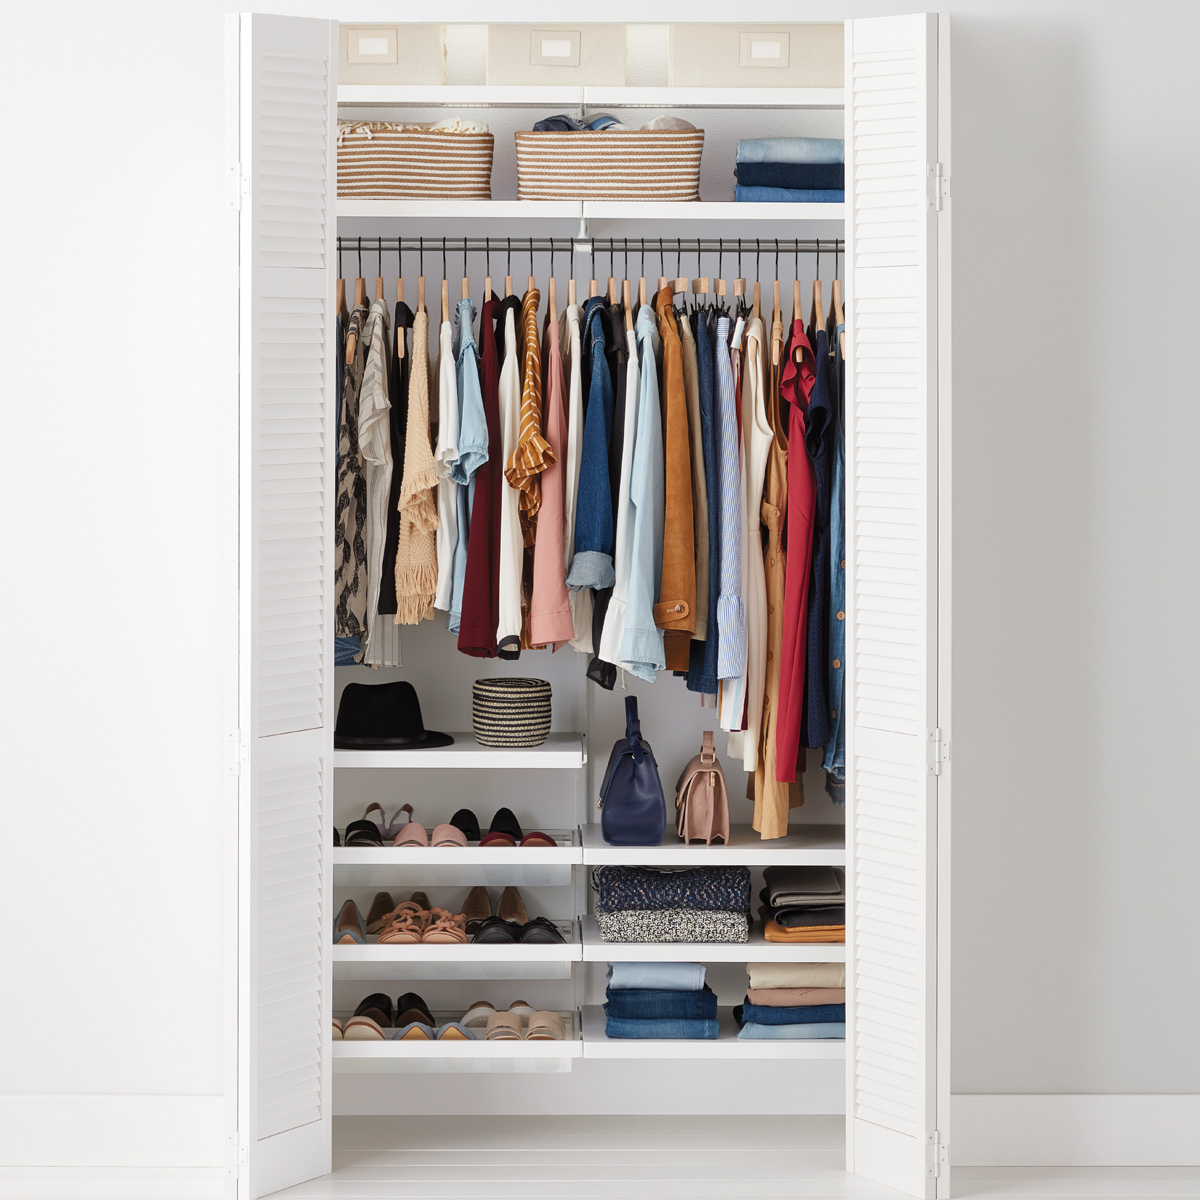 The Container Store Custom Closets - Portland / Tigard | 7417 SW Bridgeport Rd, Tigard, OR, 97224 | +1 (503) 620-5700